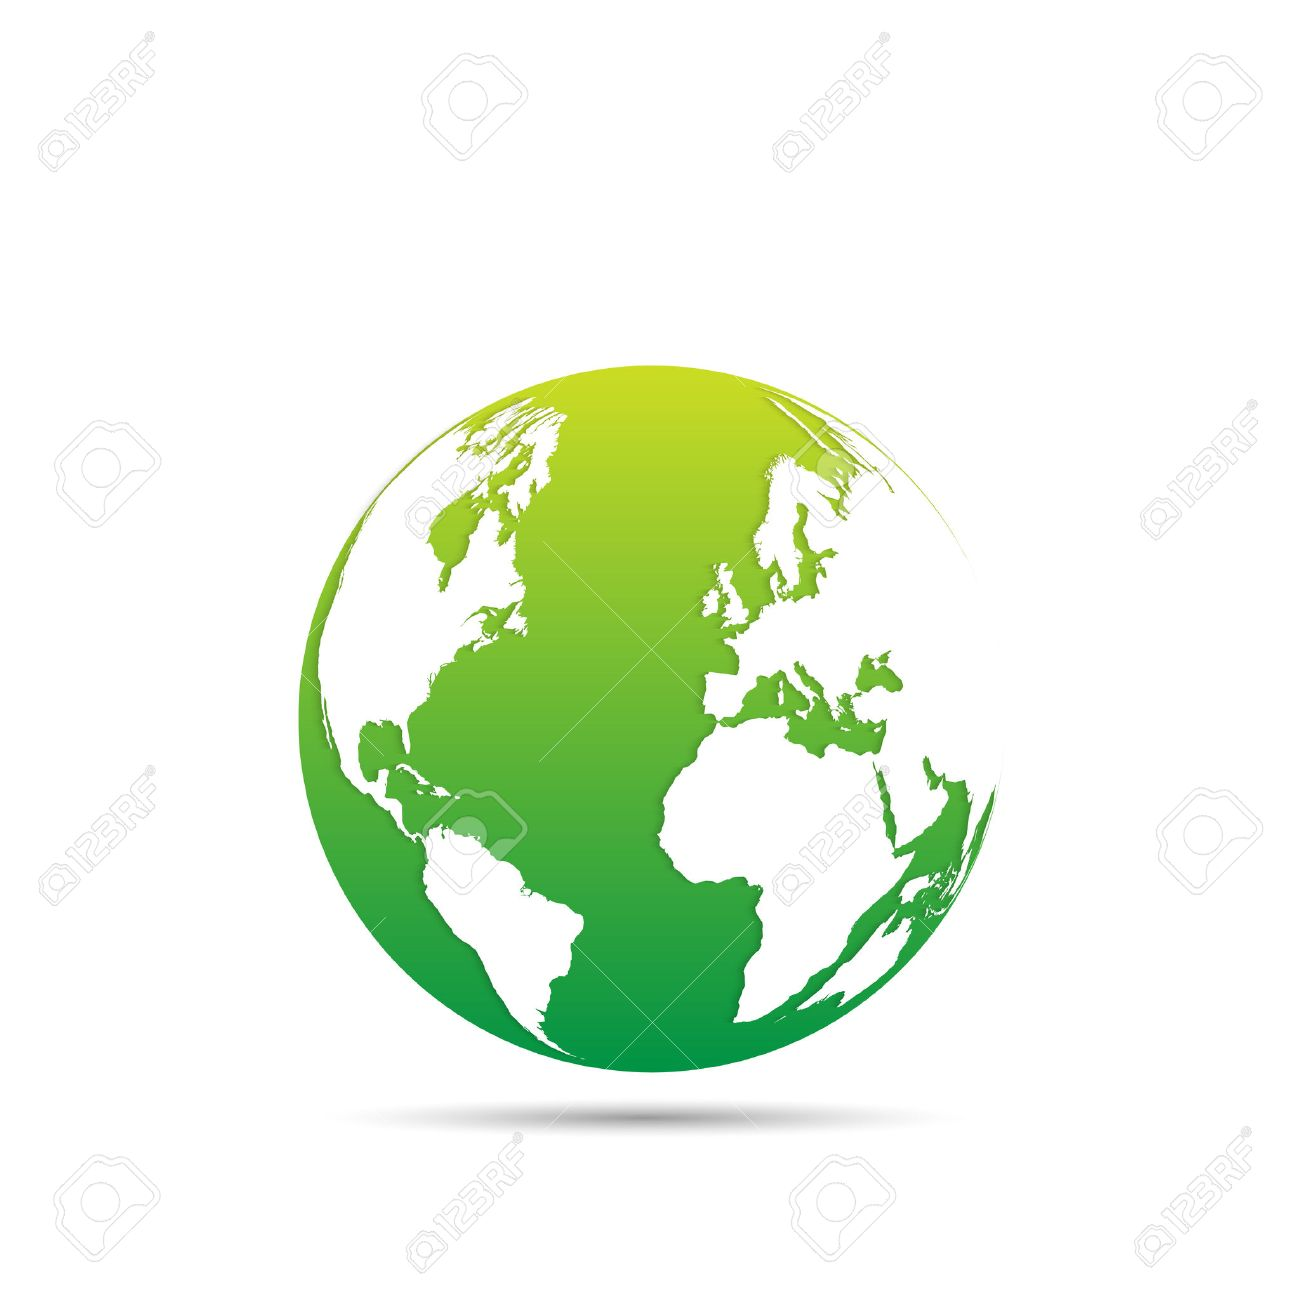 Illustration Of An Eco Friendly Green Earth Design Isolated On